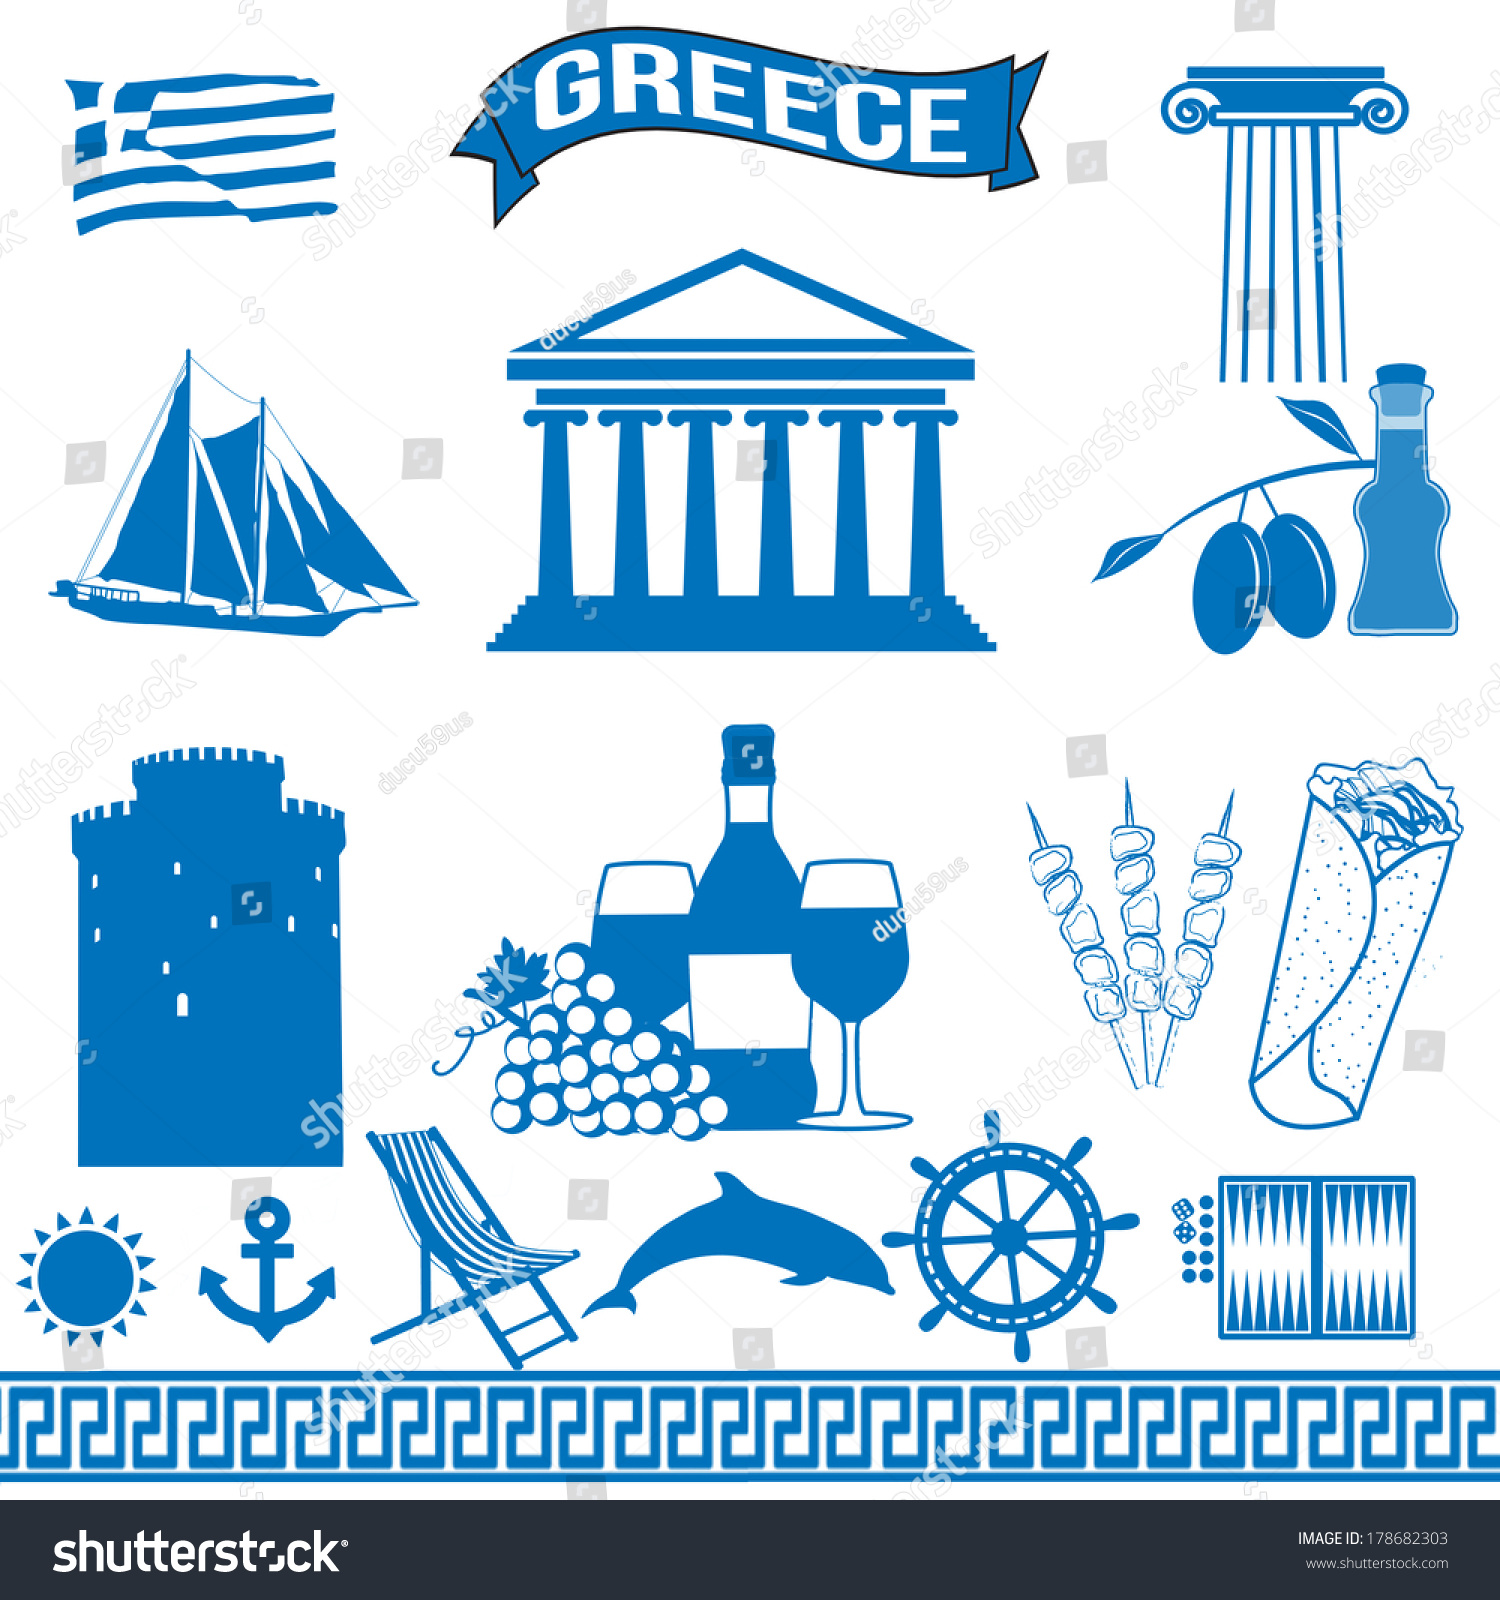 Forex trading in greece